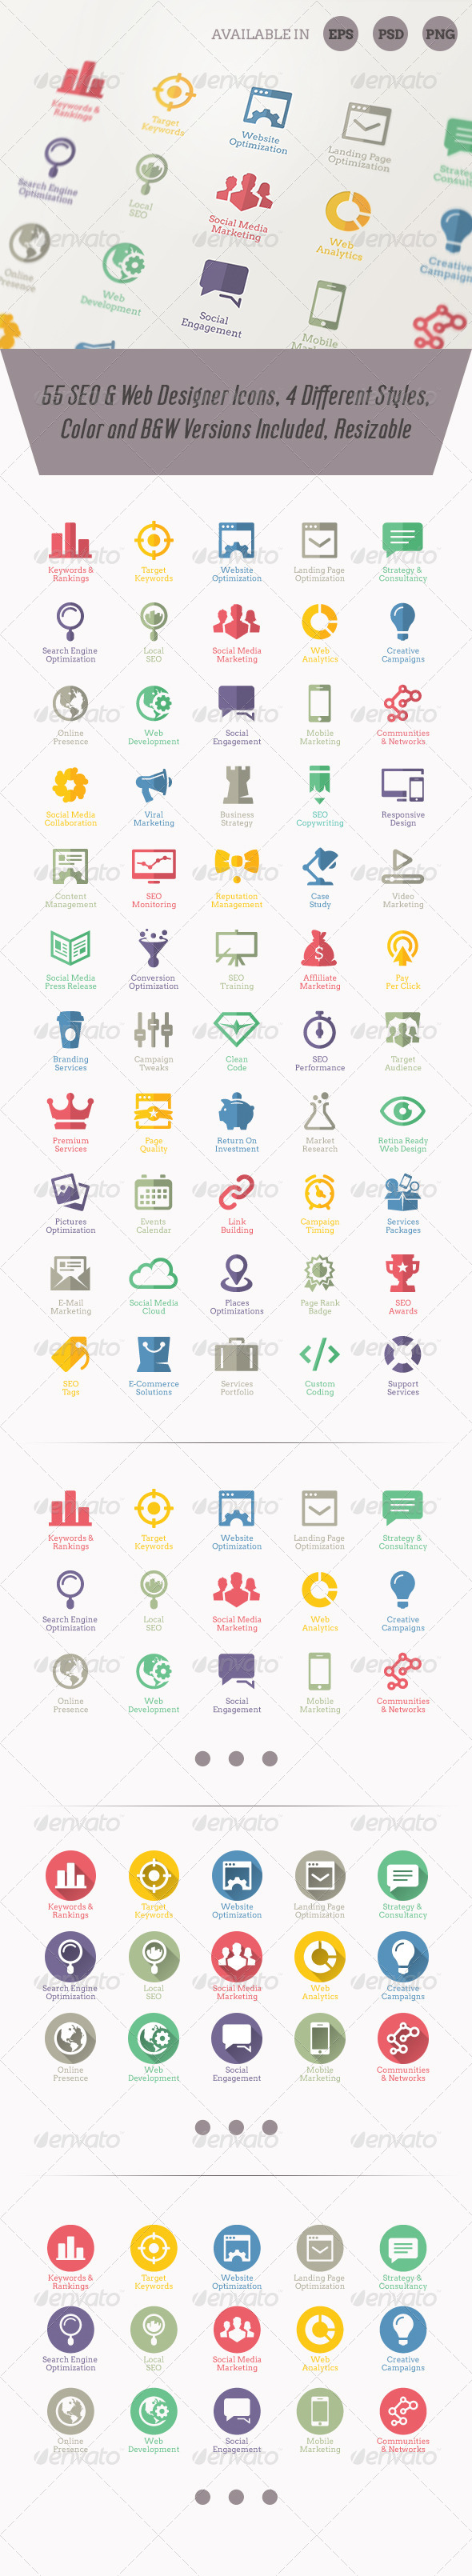 https://0.s3.envato.com/files/83973351/modern_seo_services_icons_set.jpg